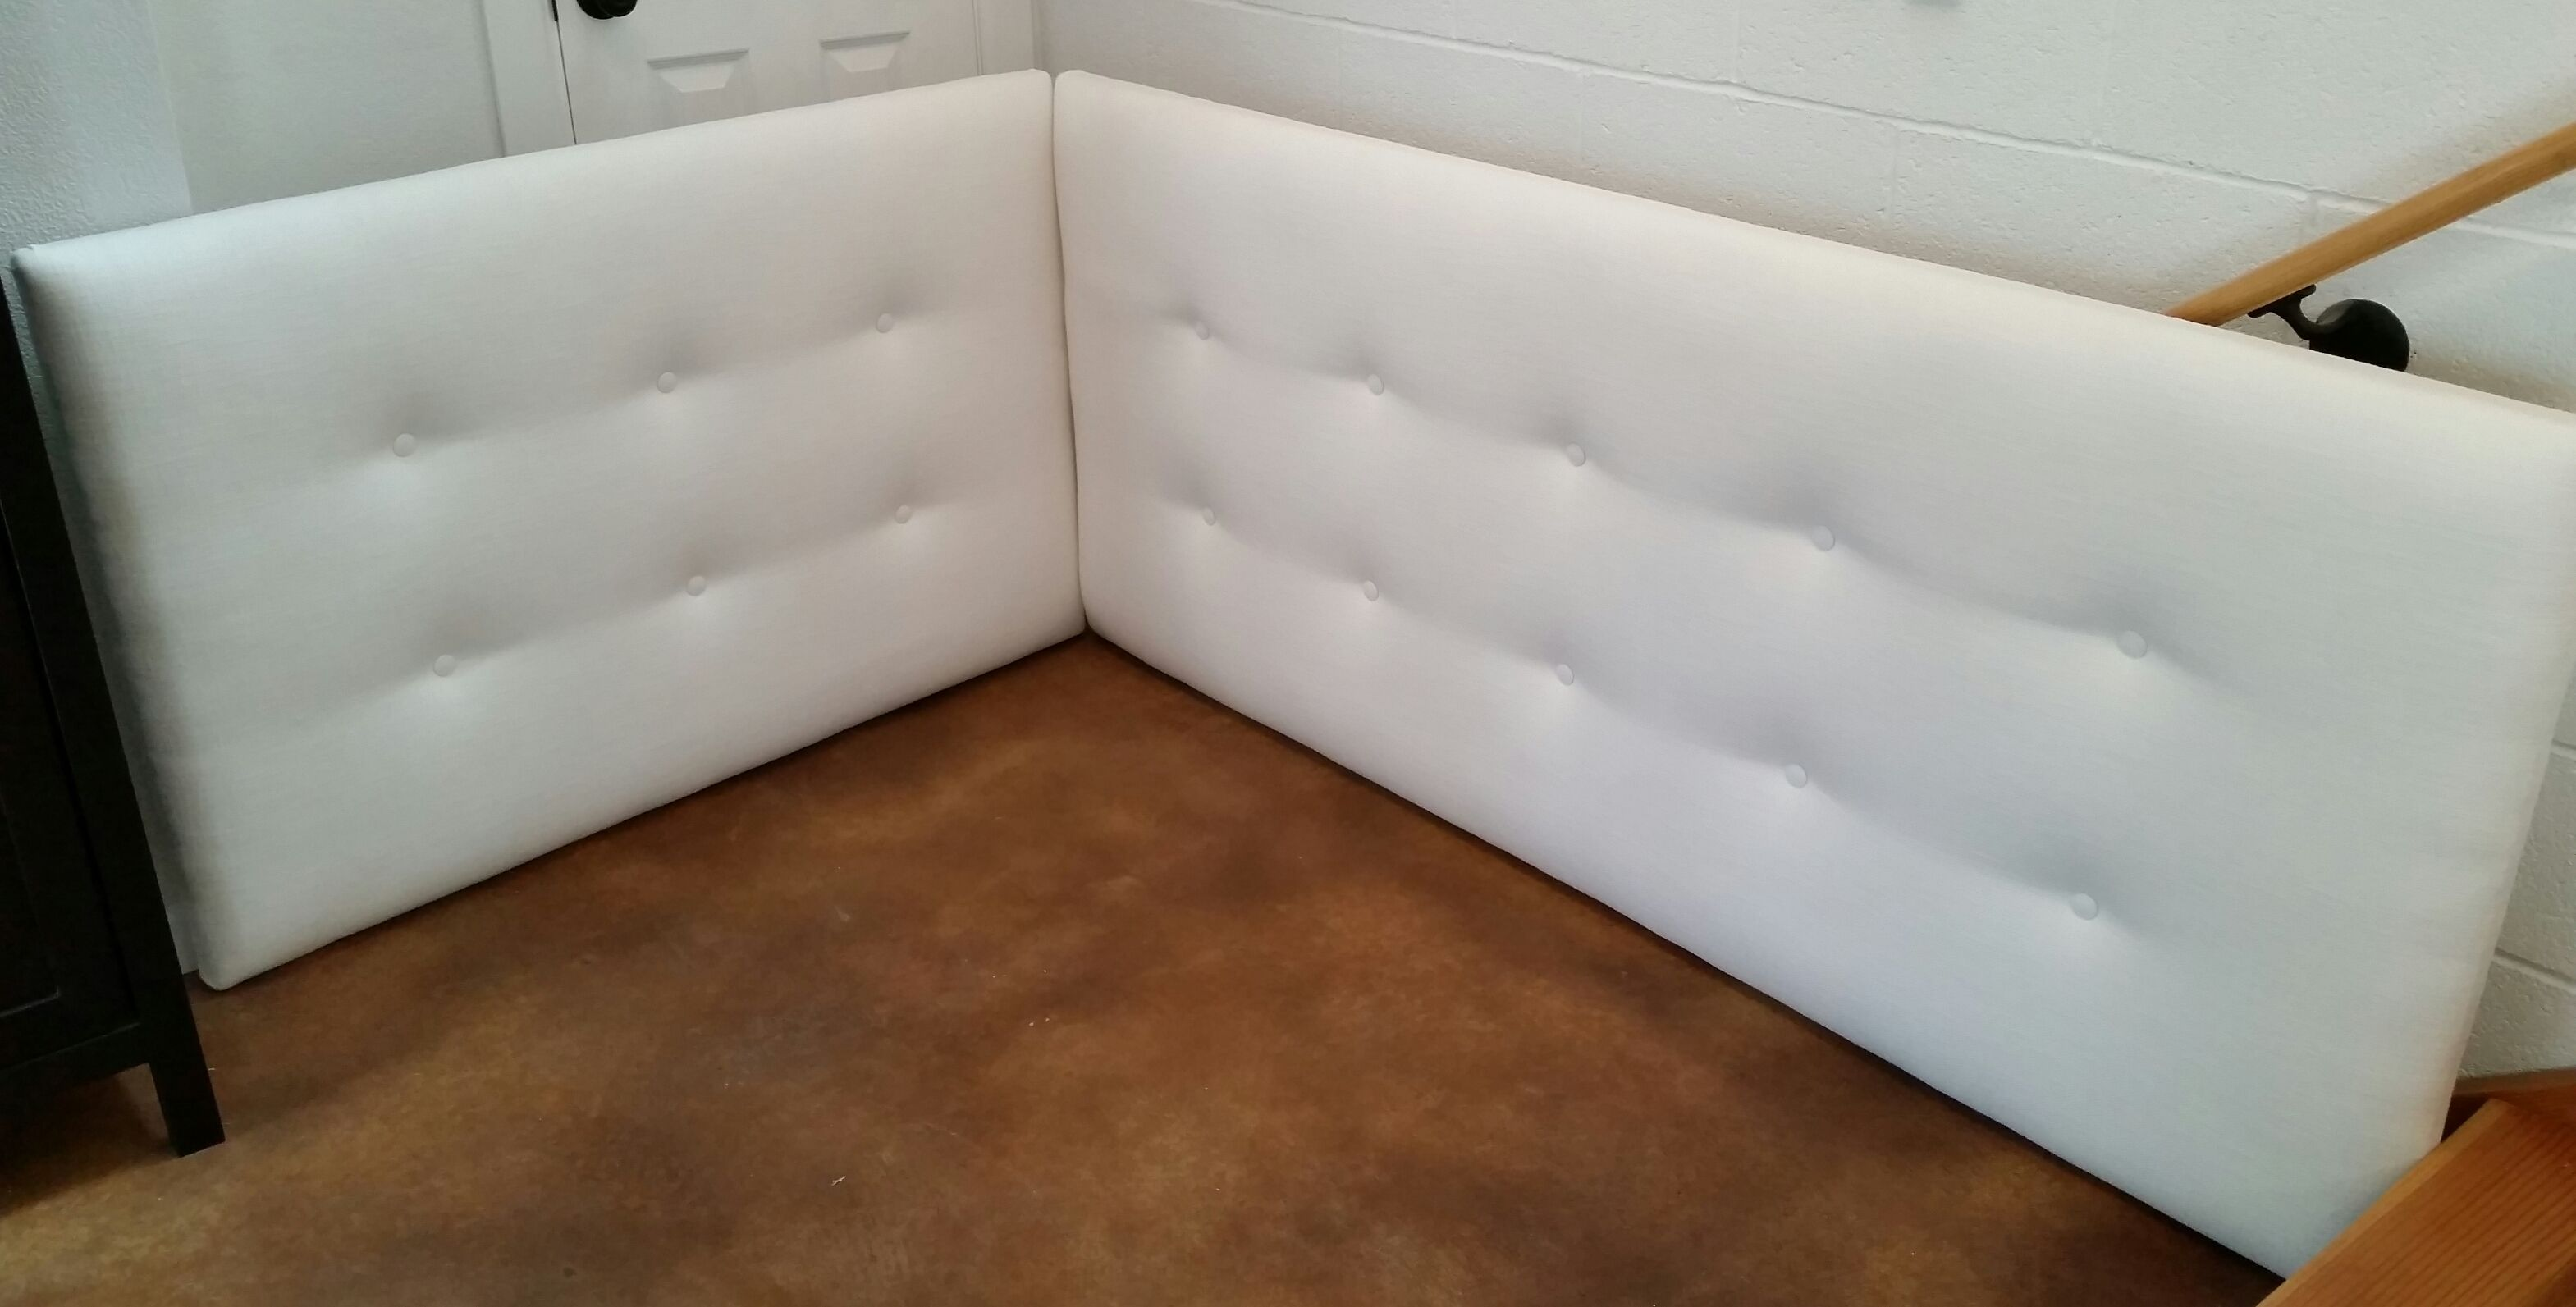 Corner day bed tufted upholstered headboard custom wall